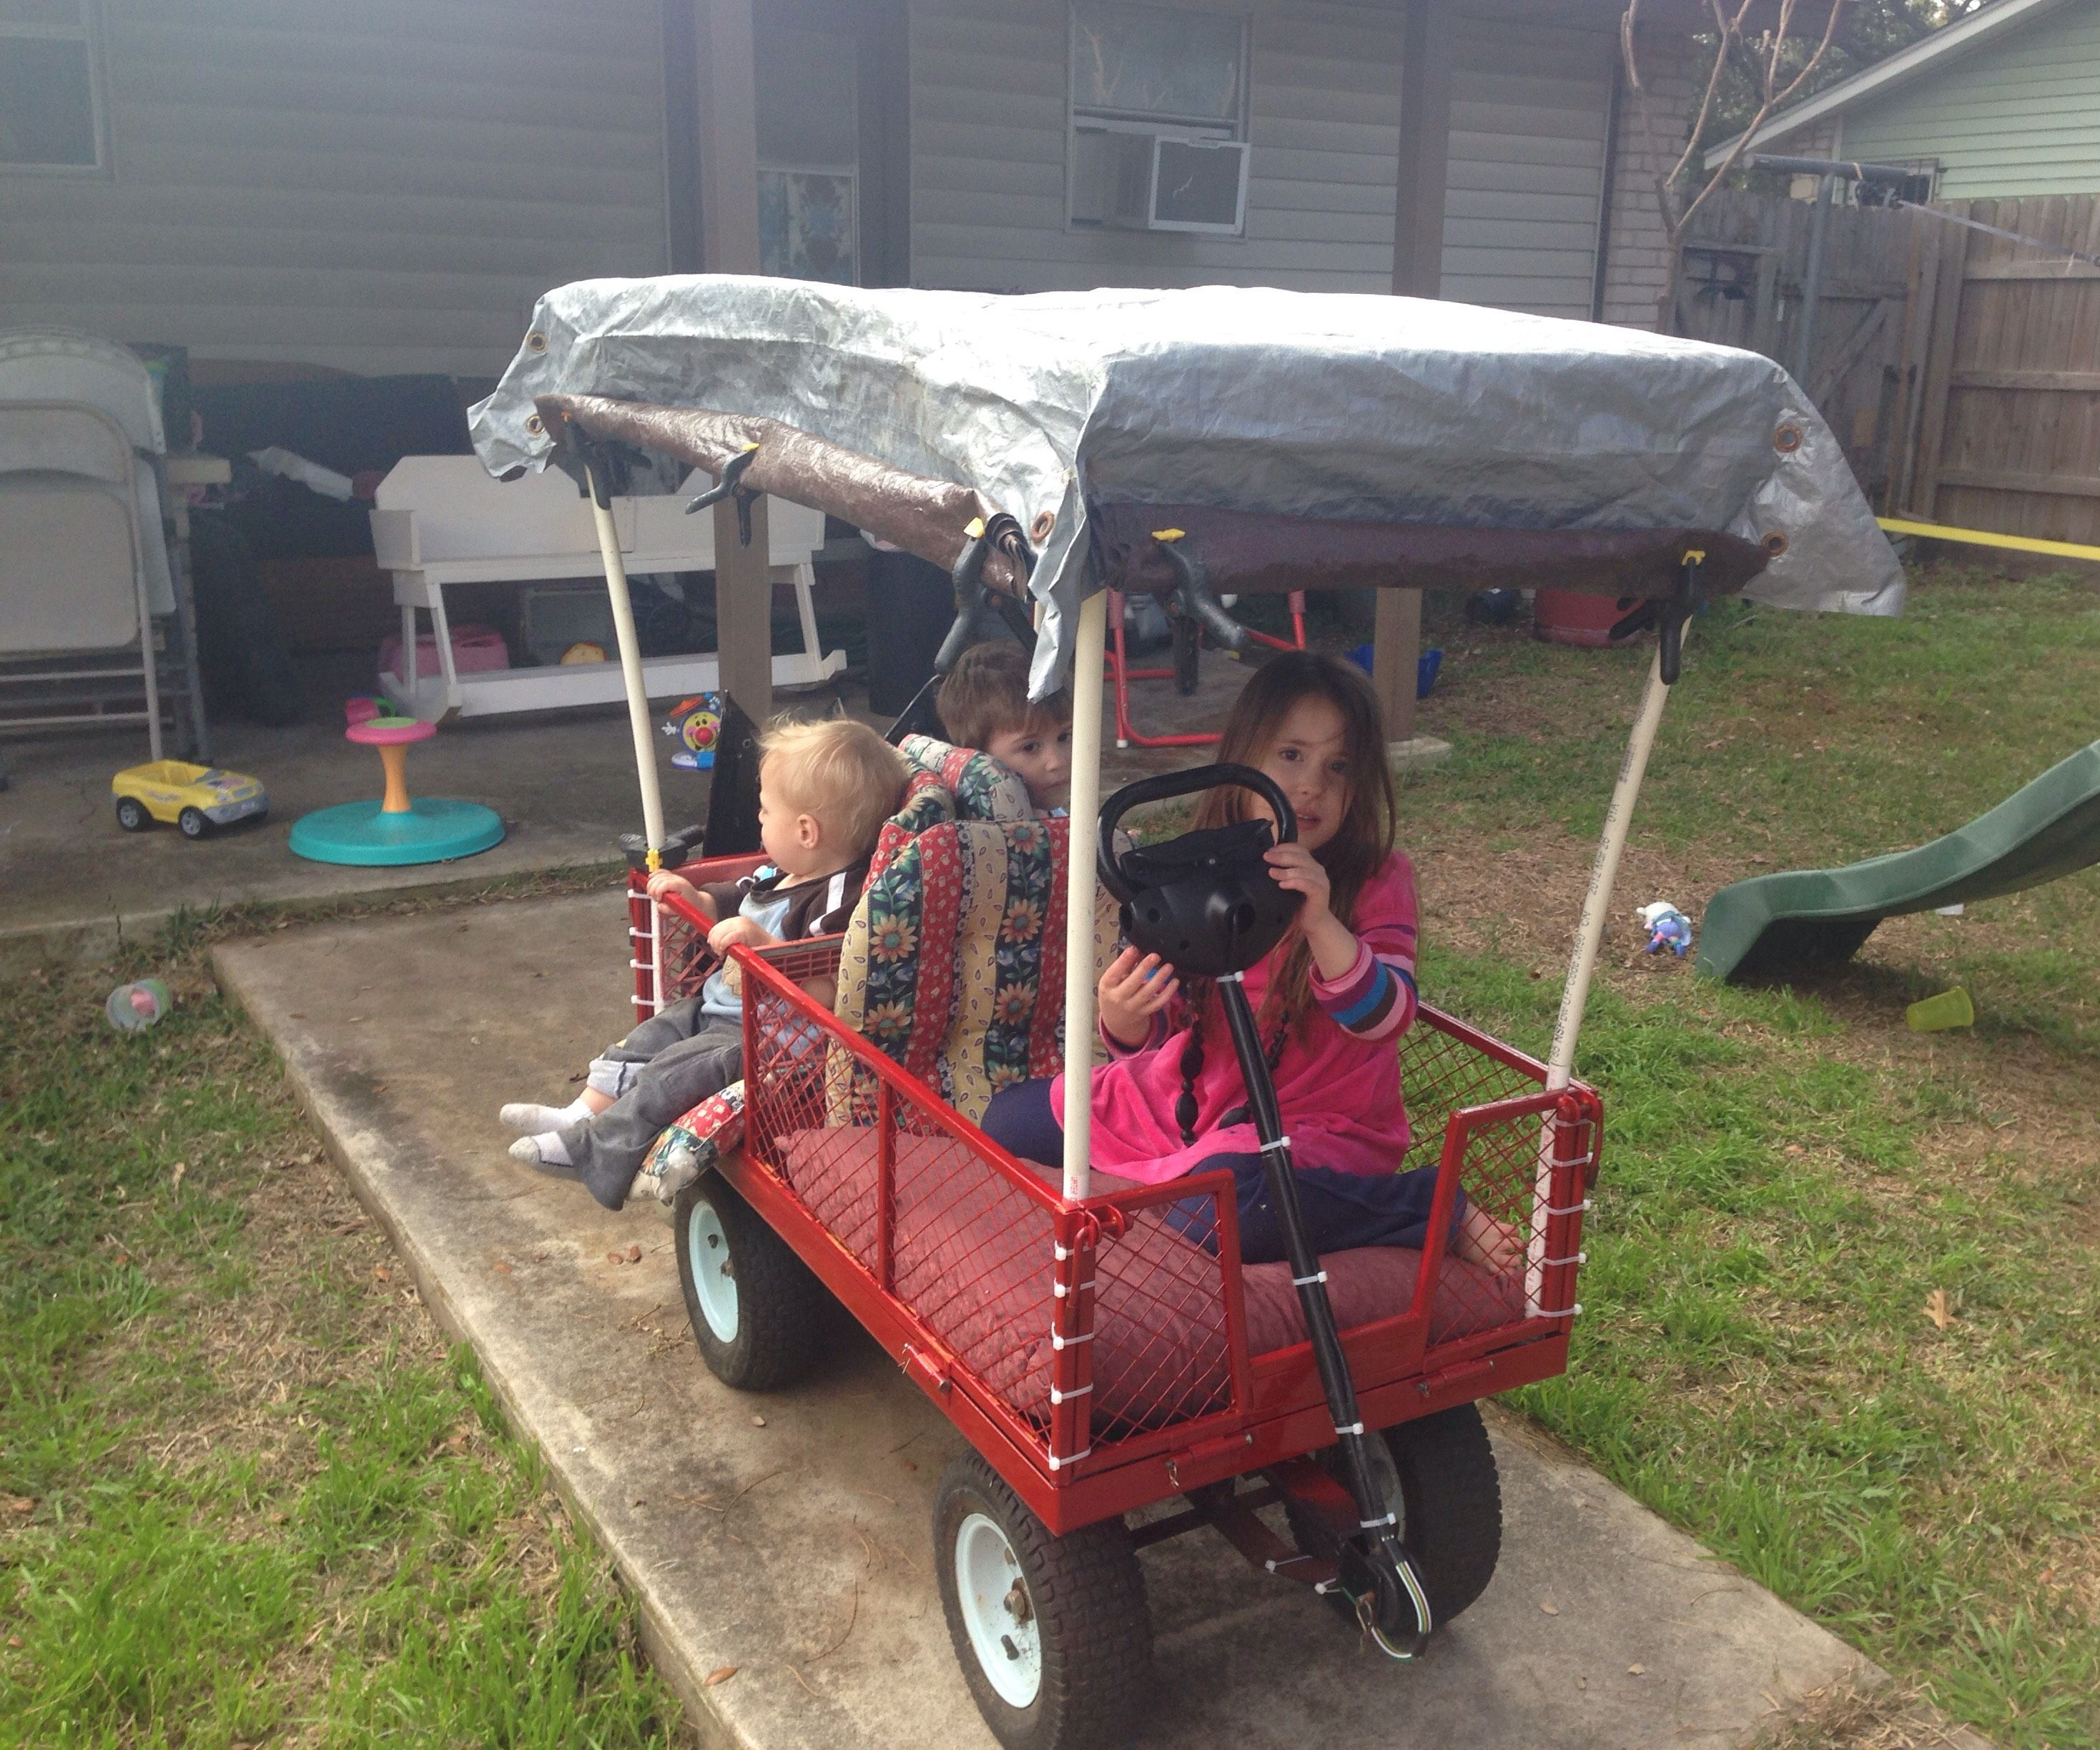 Self propelled Kiddo Chariot from old garden wagon and mobility scooter on a $100 to $200 budget.